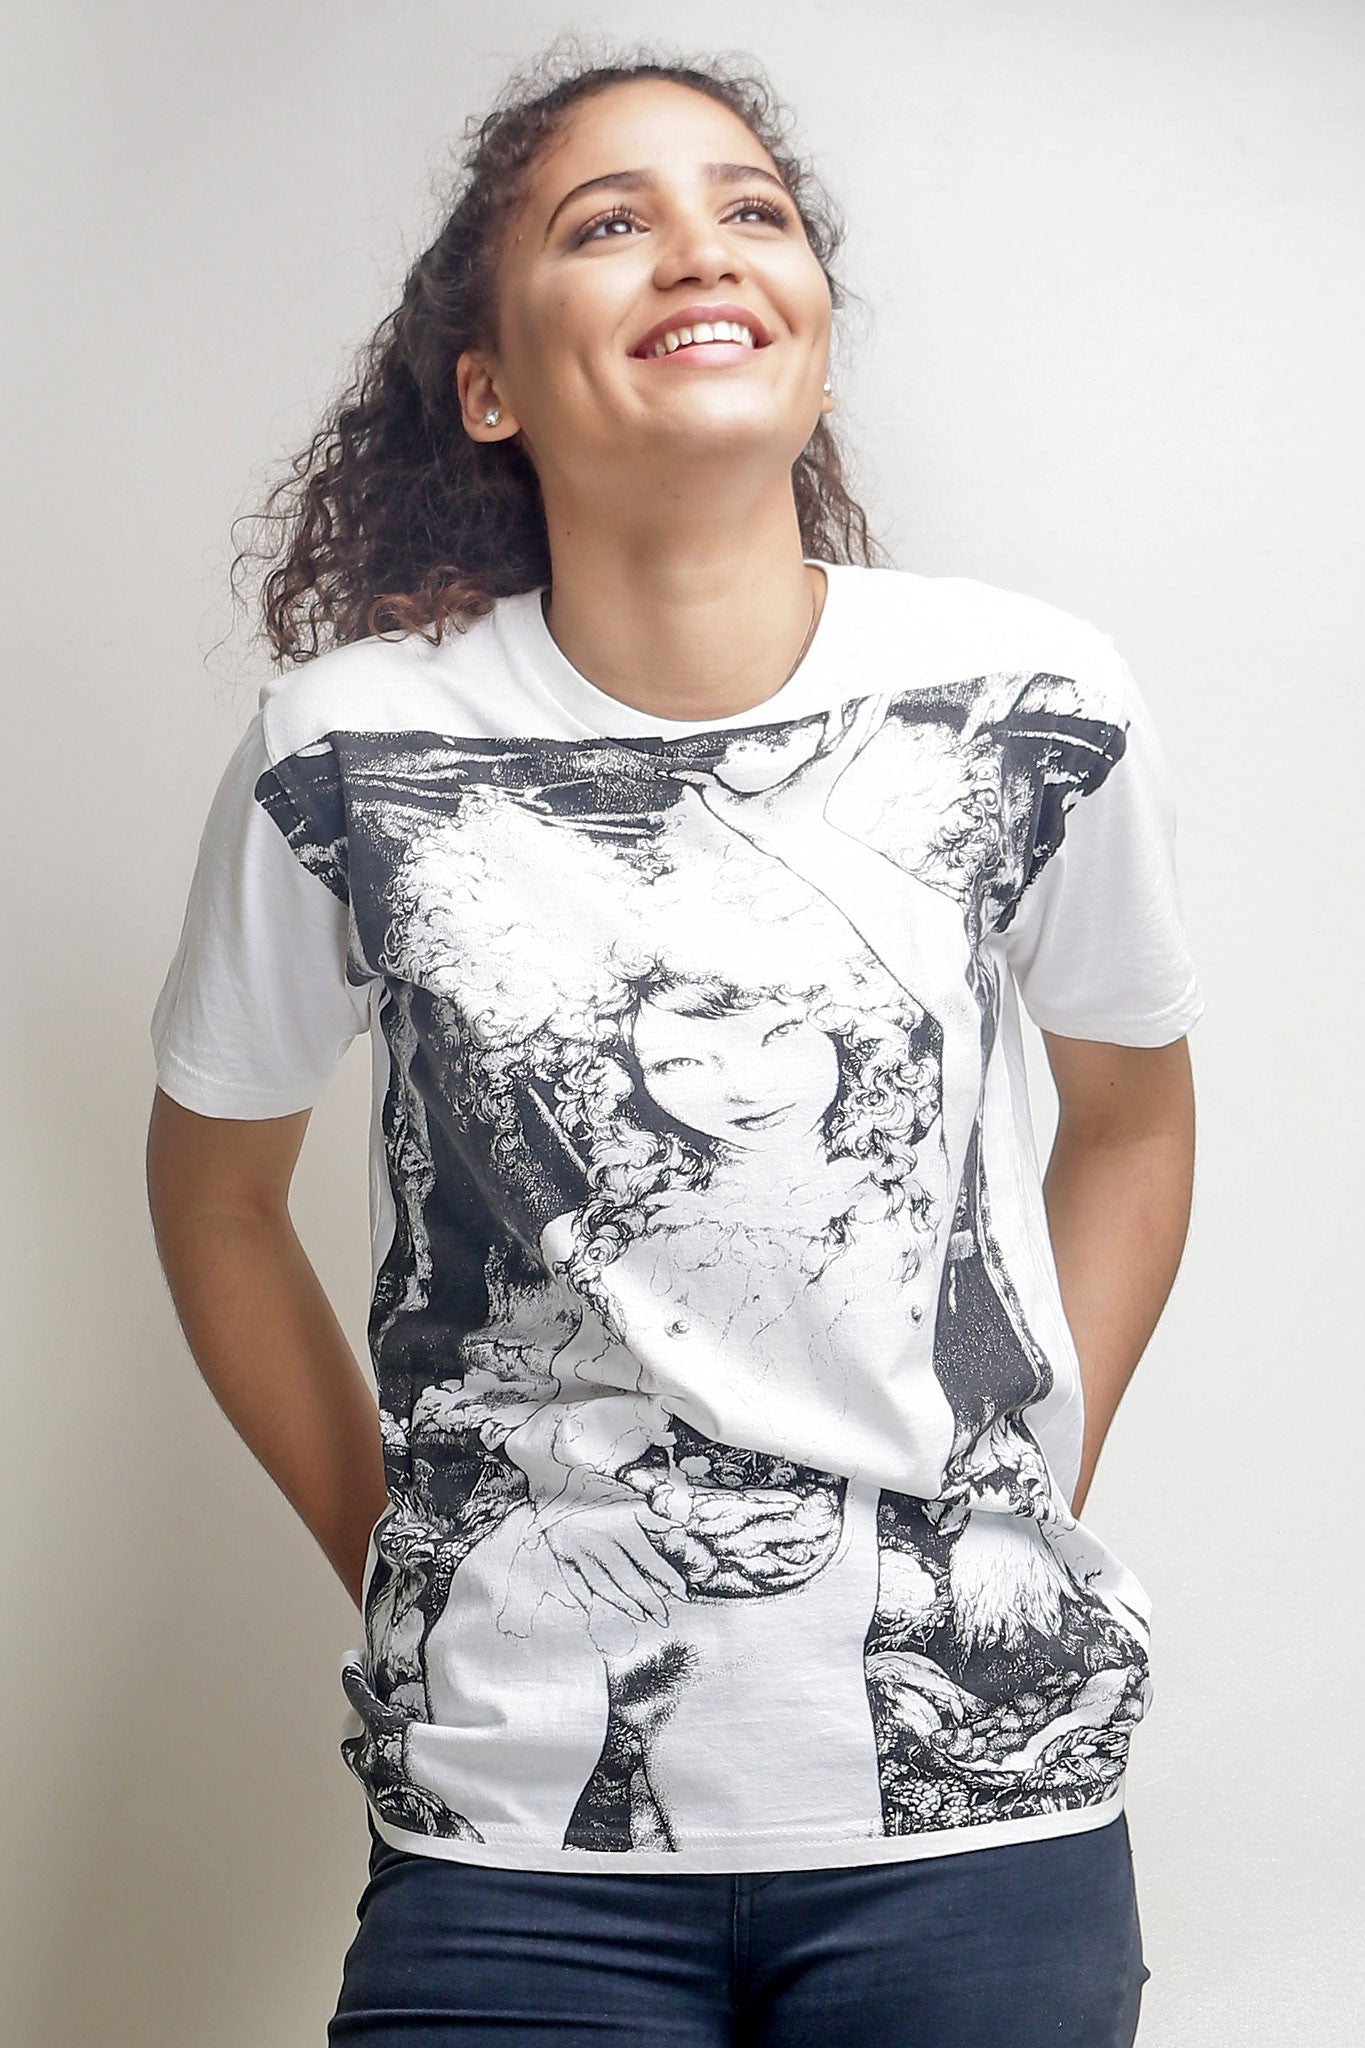 Black and White Short Sleeved Tee